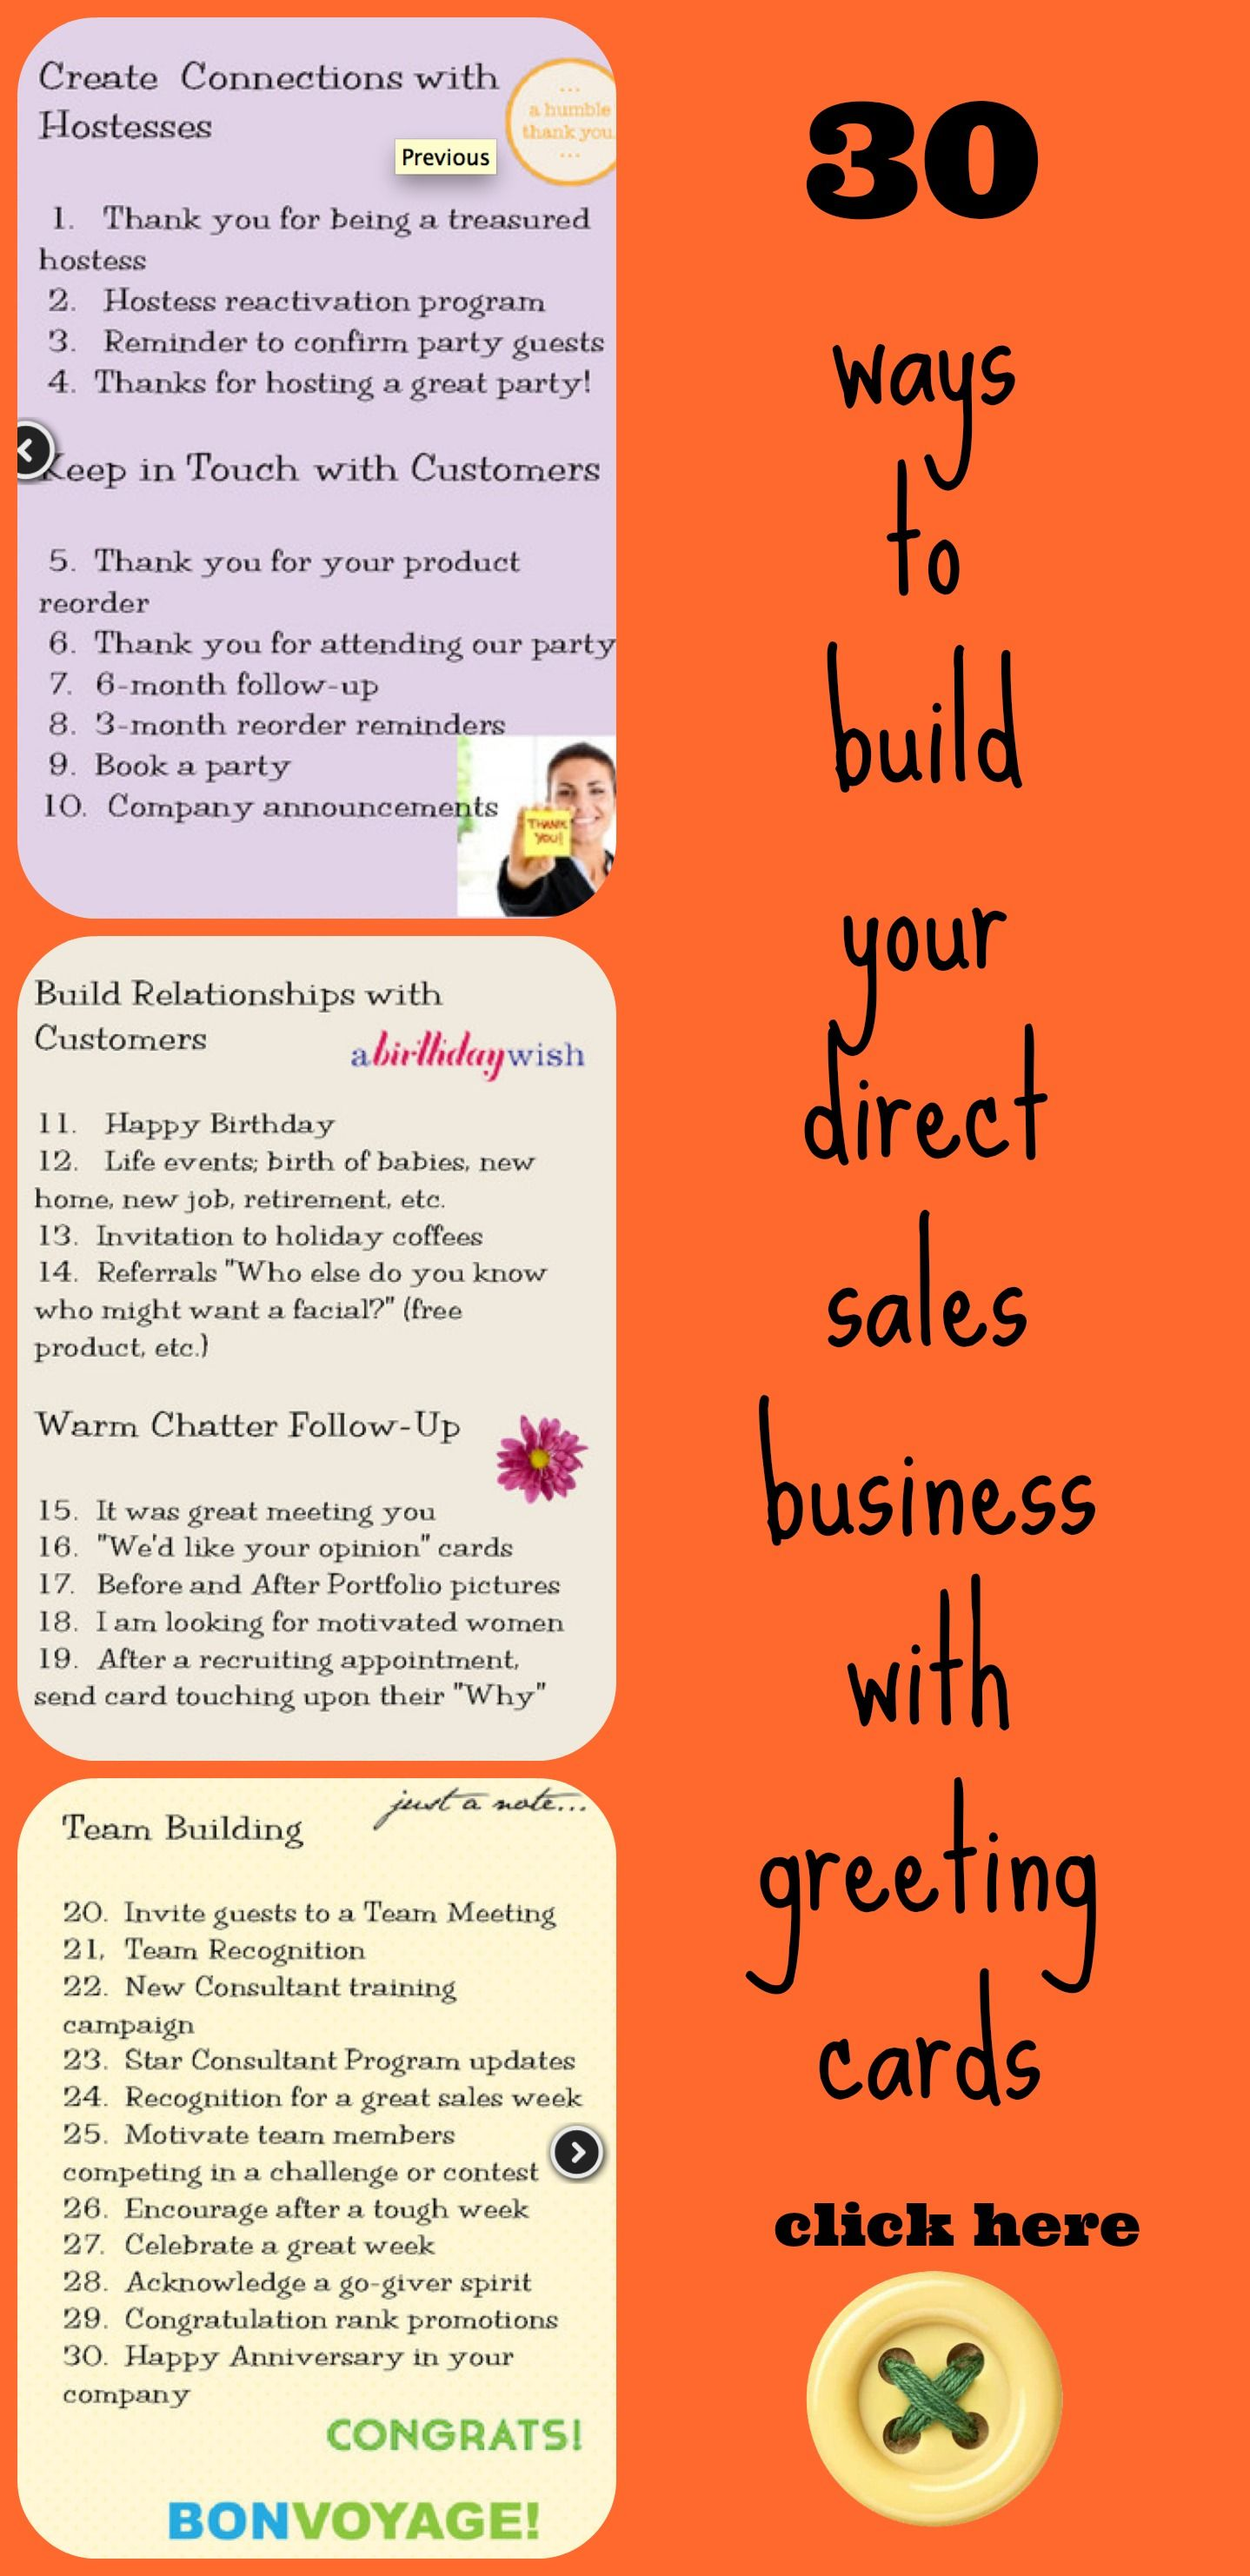 Great ways to use greeting cards to build your direct sales or mlm great ways to use greeting cards to build your direct sales or mlm company http colourmoves Gallery